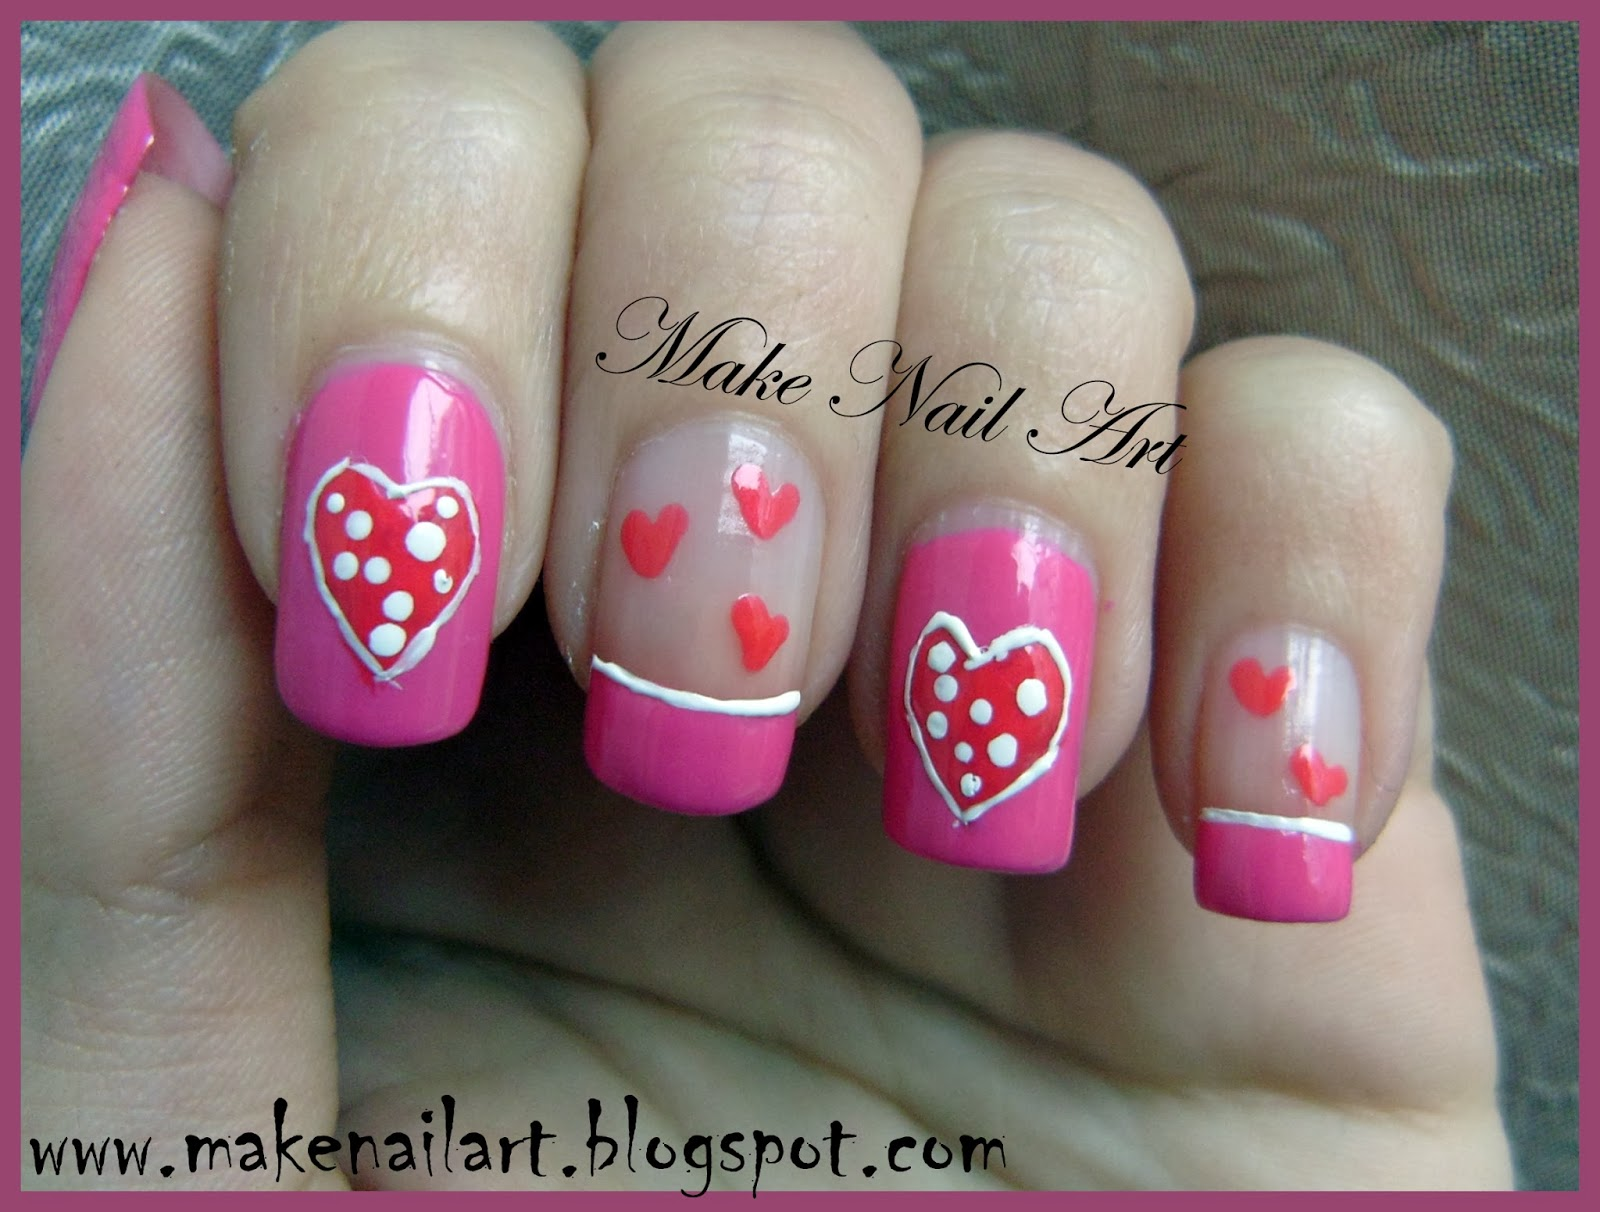 Make Nail Art Easy Nail Art Design With Hearts For Valentines Day